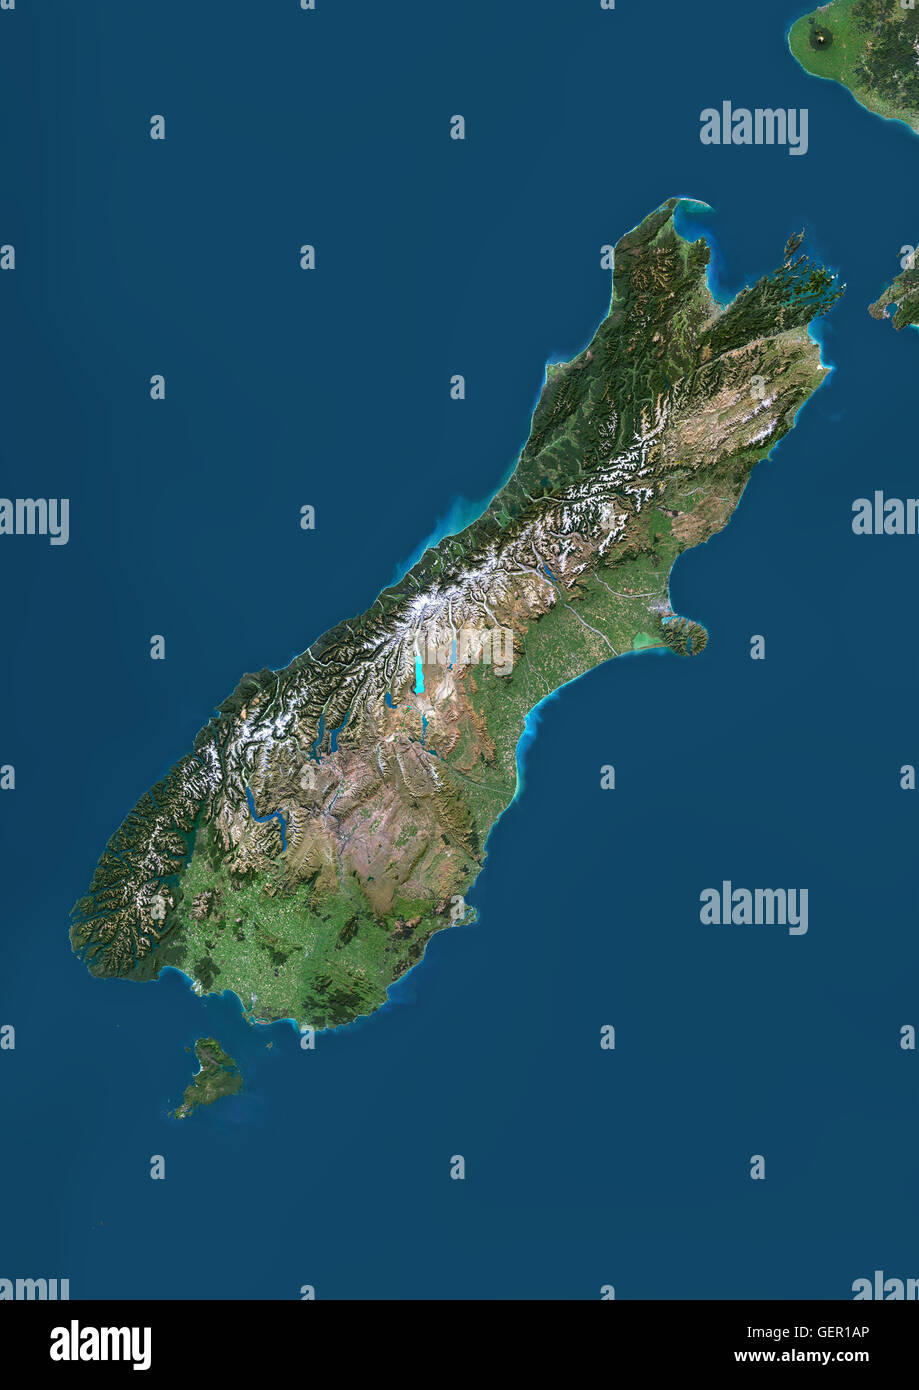 c8.alamy.com/comp/GER1AP/satellite-view-of-the-sou... Satellite Map Of New Zealand on satellite map of vermont, satellite map of the vatican, satellite map of the arctic, satellite map of saipan, satellite map of northern california, satellite map of czech republic, satellite map of somalia, satellite map of tunisia, satellite map of the middle east, satellite map of countries, satellite map of trinidad and tobago, satellite map of qatar, satellite map of the caribbean, satellite map of north africa, satellite map of united states of america, satellite map of the gambia, satellite map of ireland, satellite map of kosovo, satellite map of the us, satellite map of brunei darussalam,